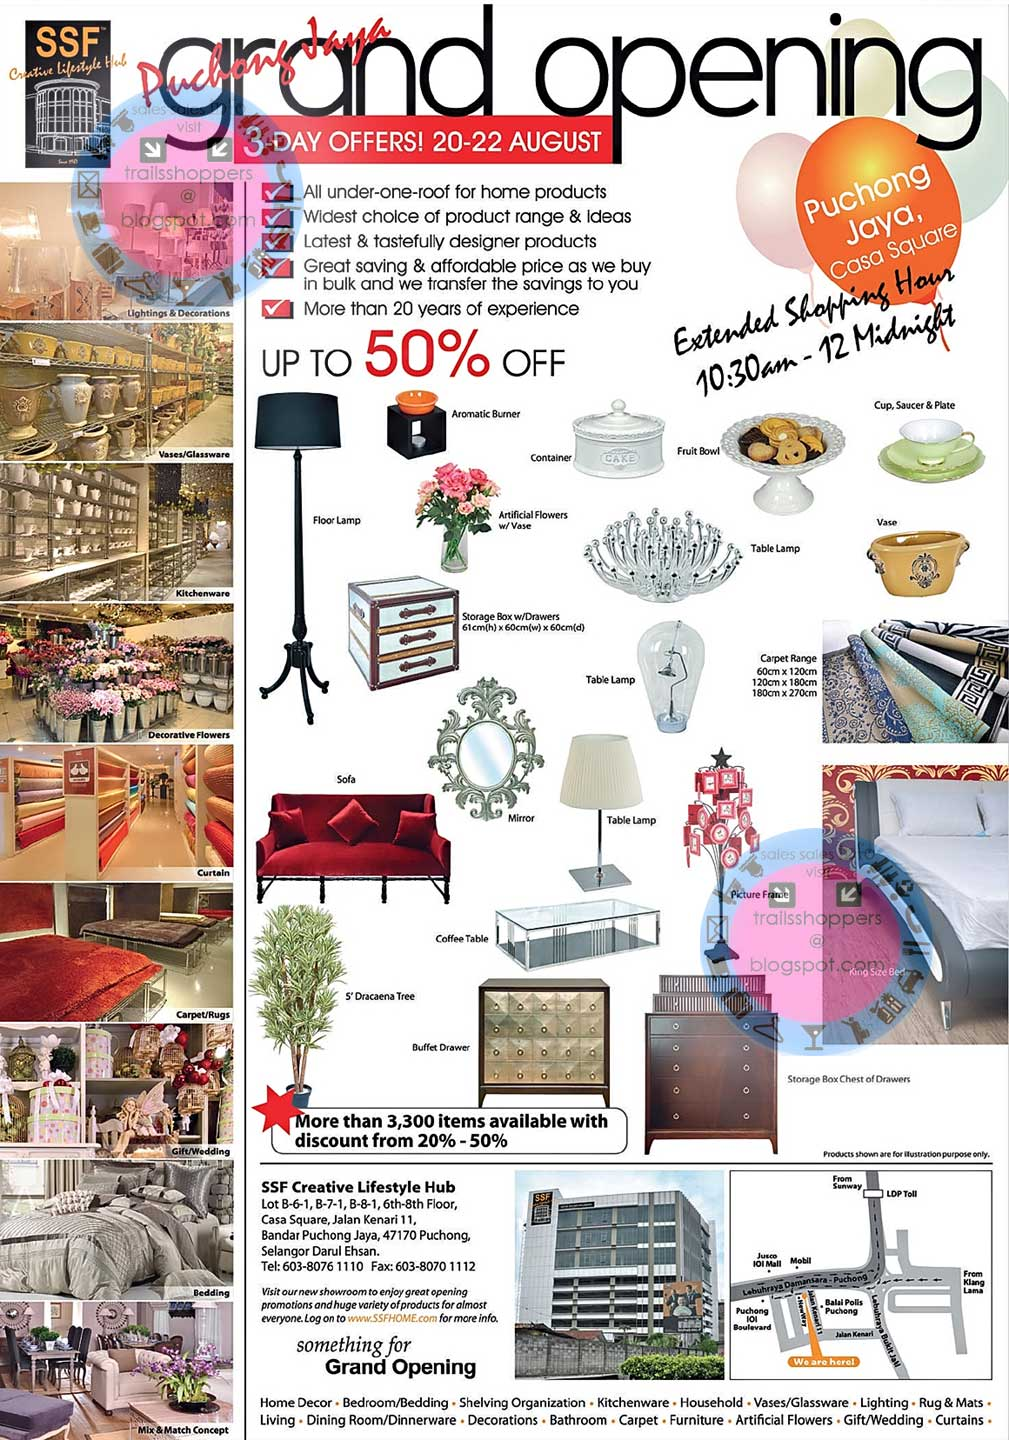 Ssf grand opening offers up to 50 20 aug 22 august for Ssf home designs